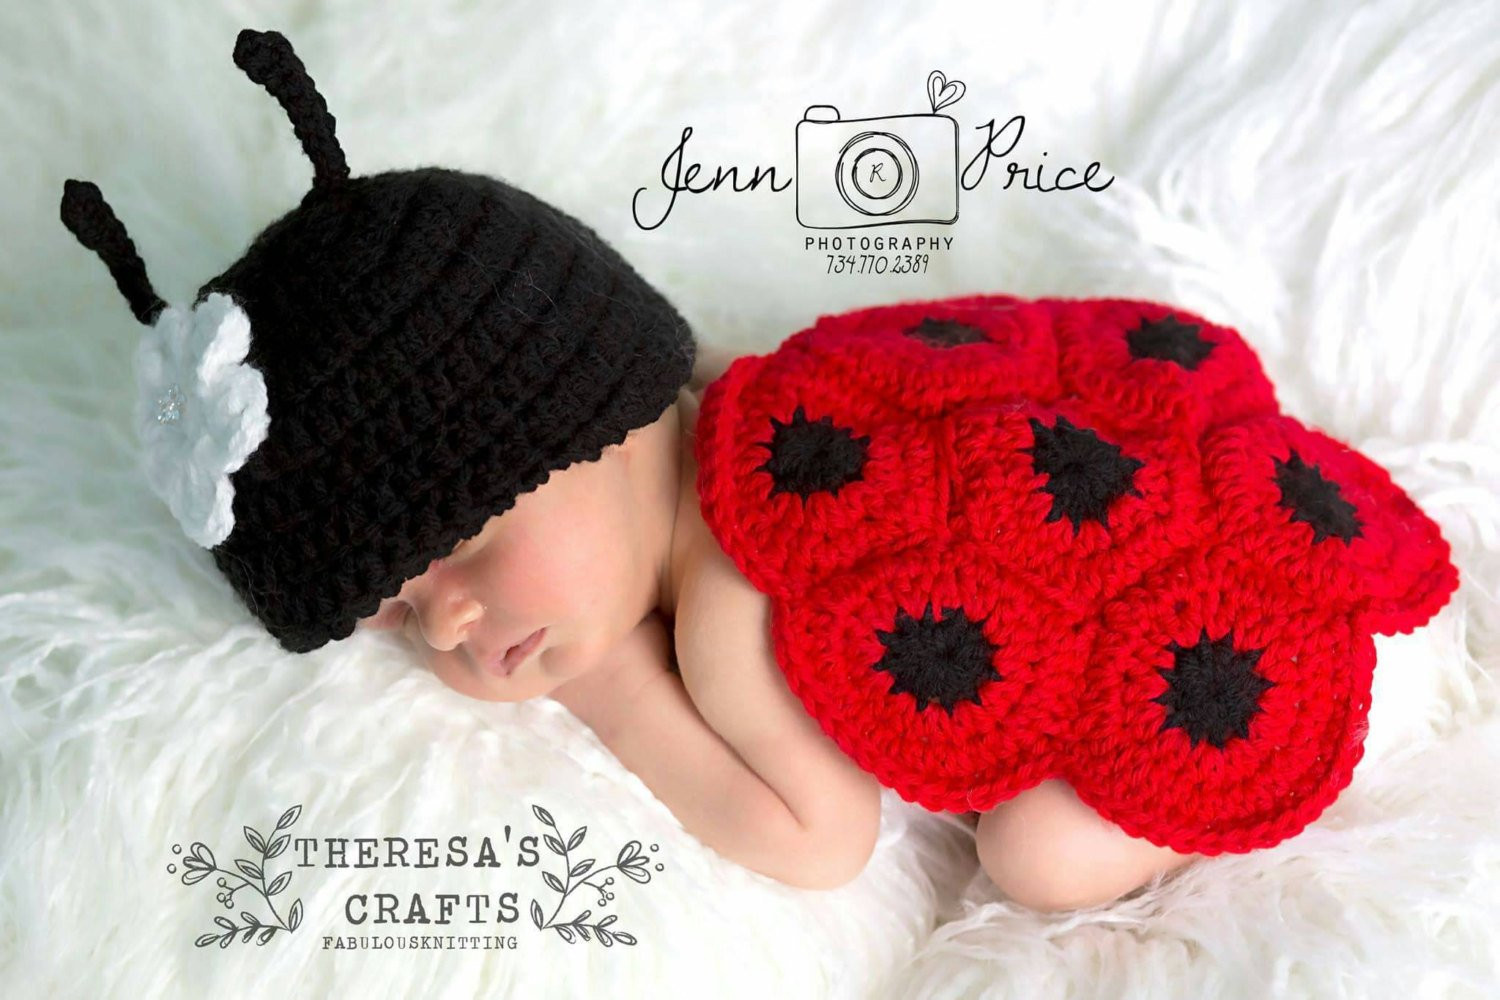 Crochet Outfit Beautiful Ladybug Baby Outfit Crochet Ladybug Baby Outfit Baby Photo Of Gorgeous 41 Ideas Crochet Outfit